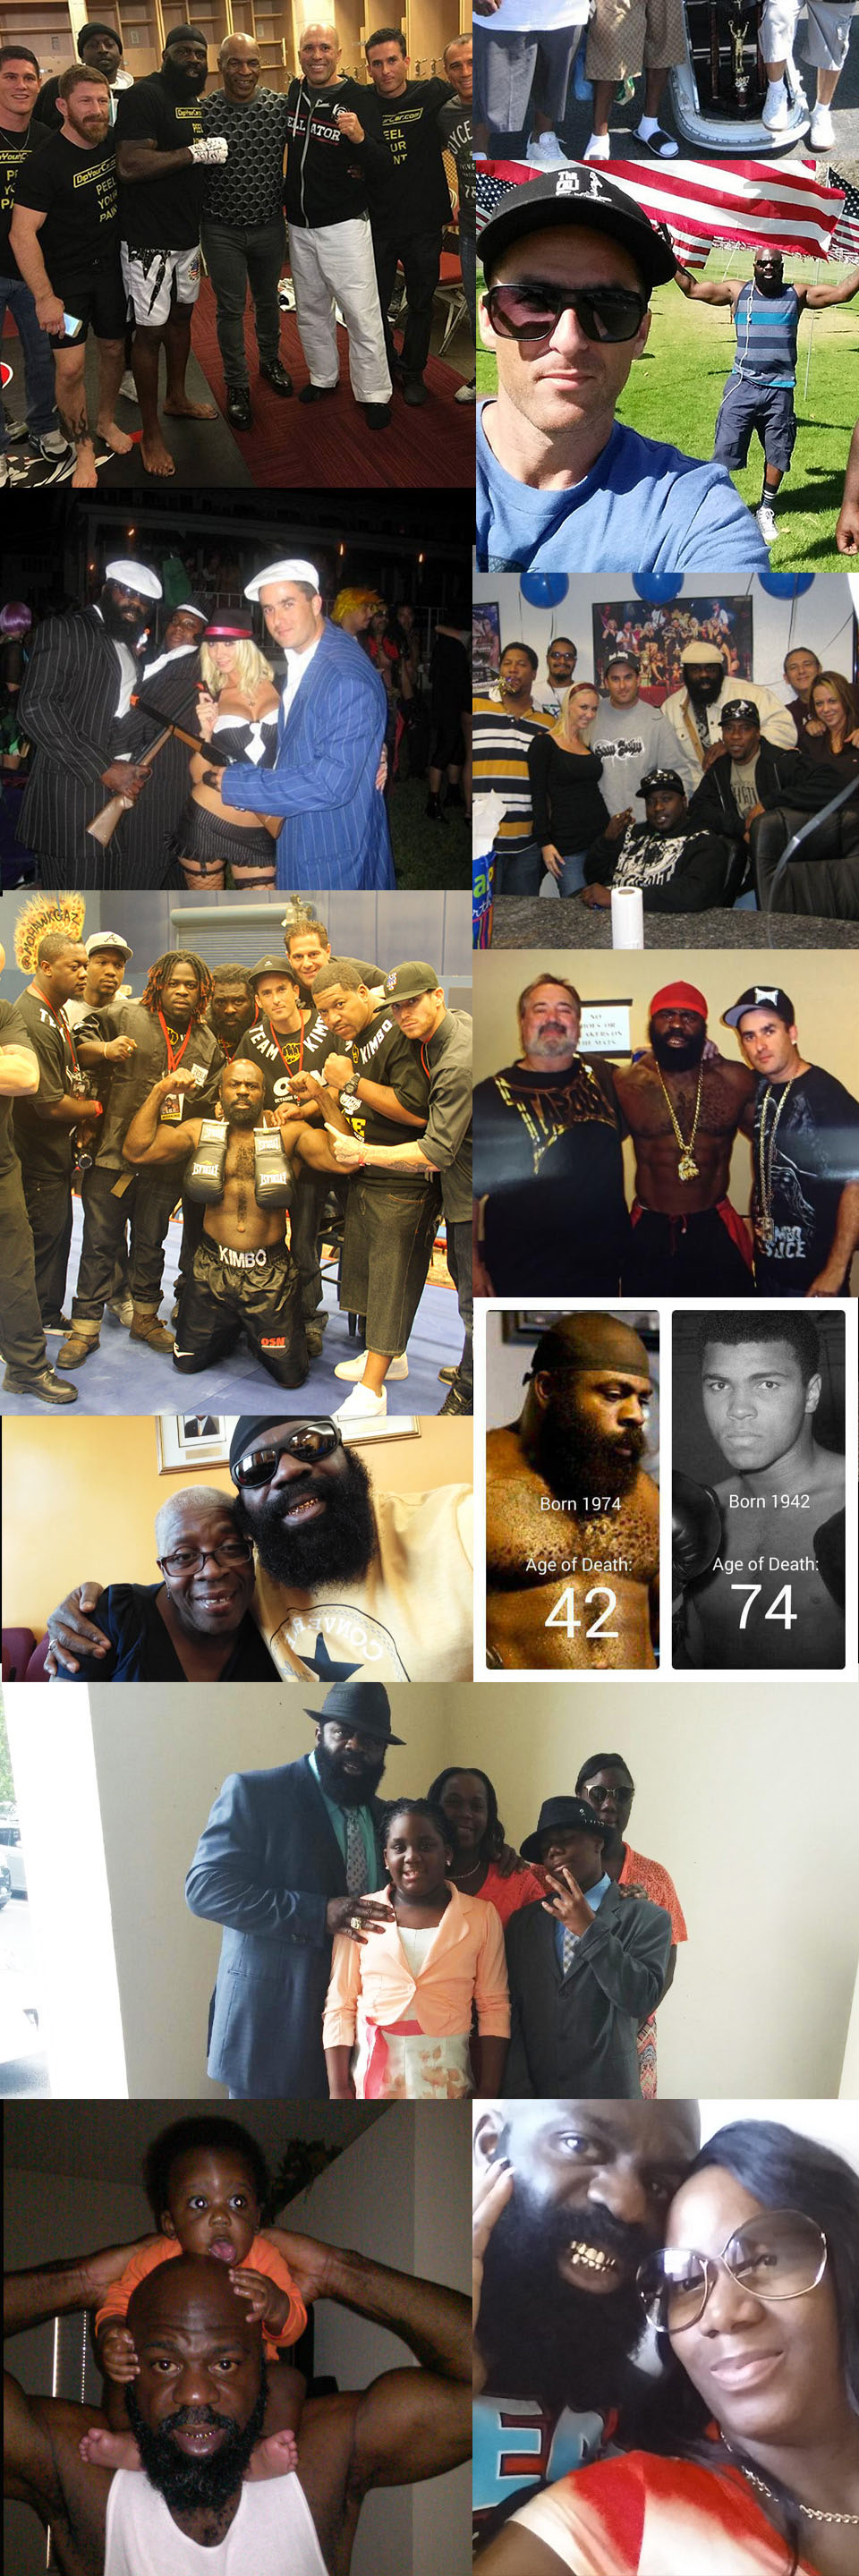 Kimbo Slice Family Photos